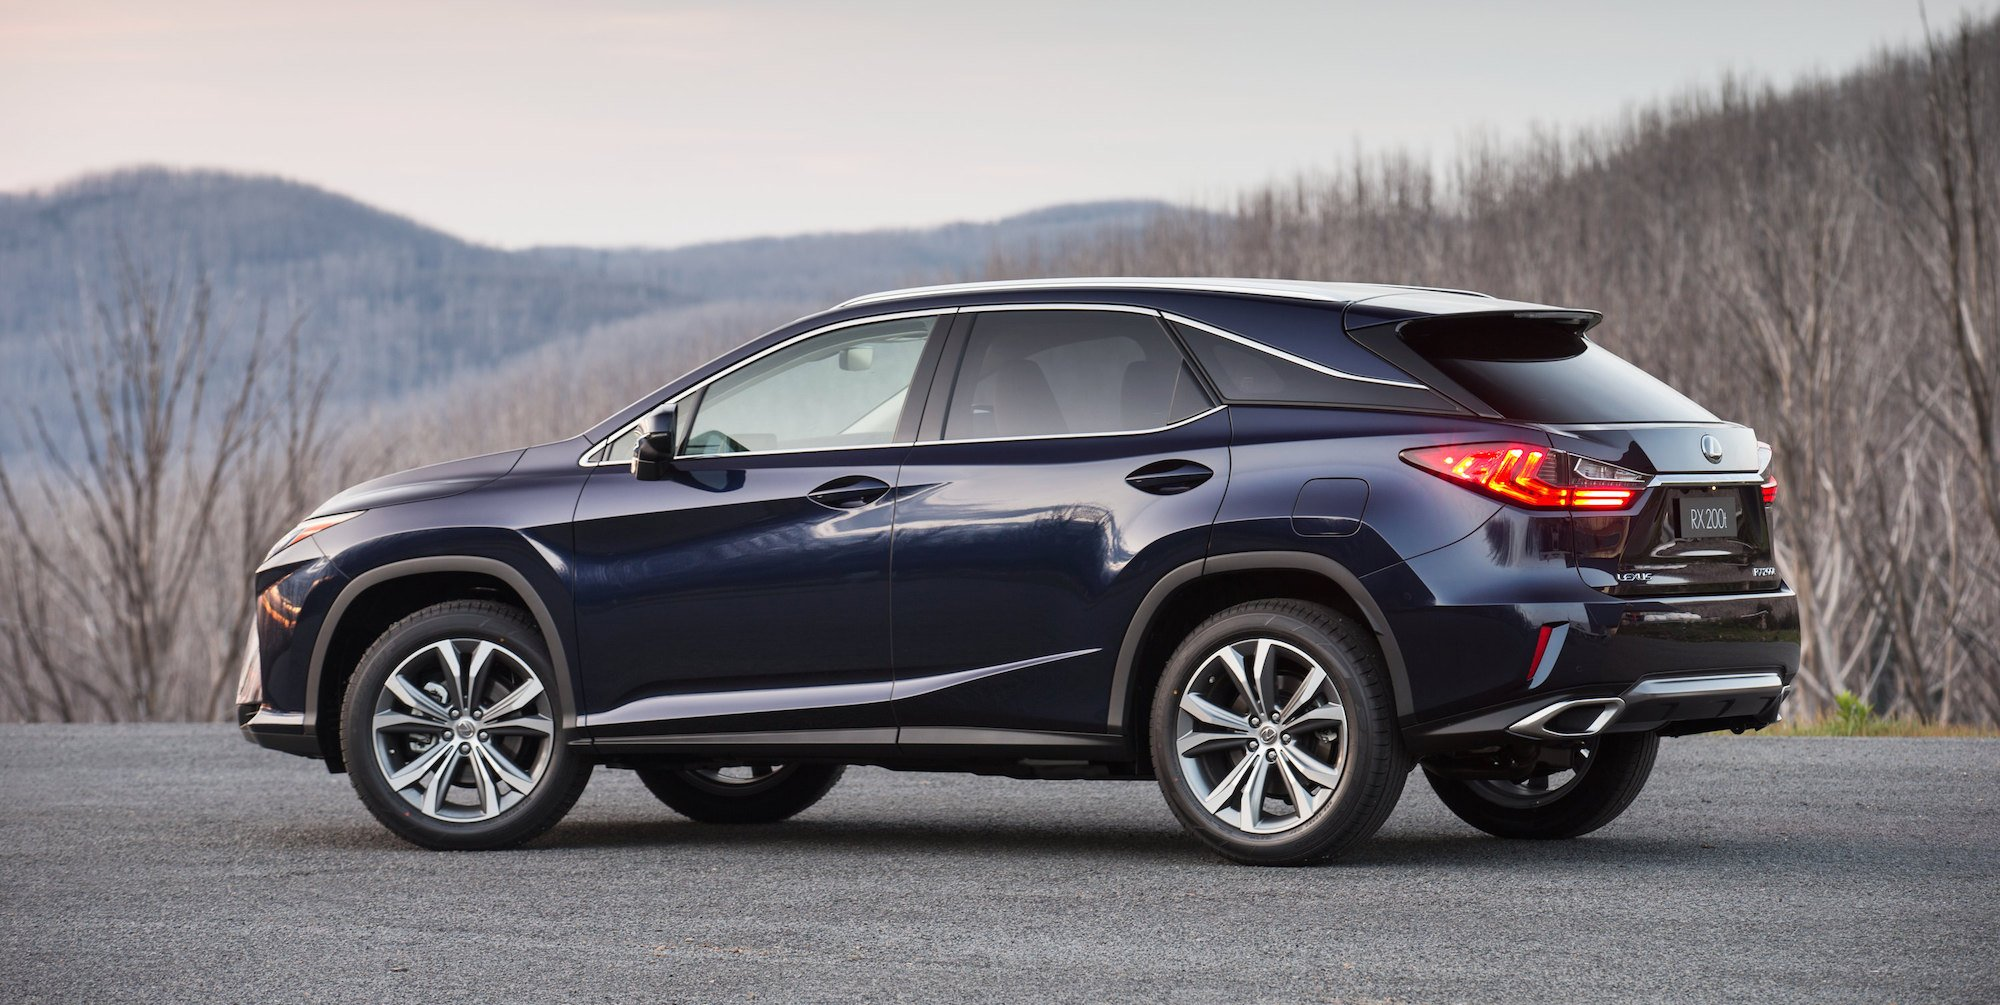 New Lexus Suv >> 2016 Lexus RX Review - photos | CarAdvice